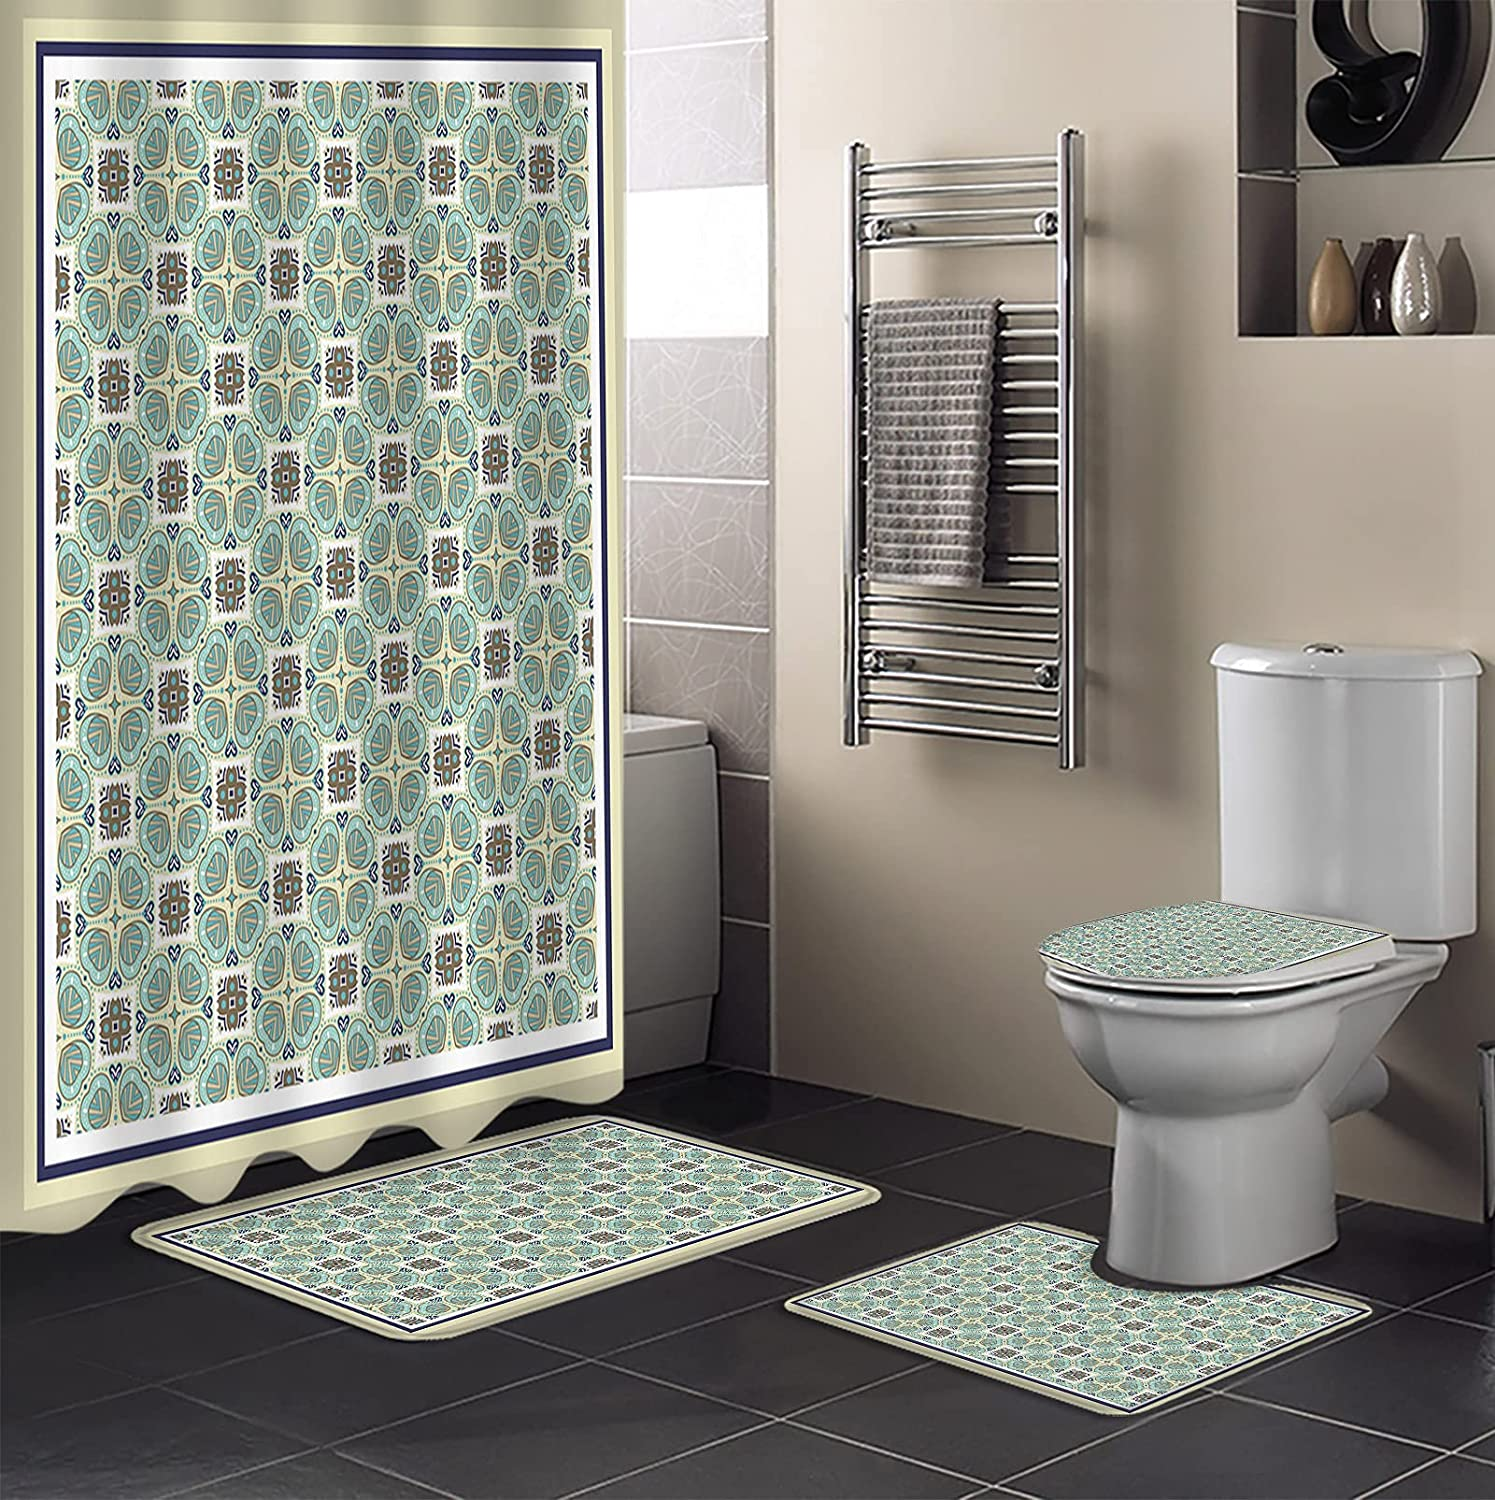 4Pcs Shower Curtain Sets Max 88% OFF NEW before selling with Boho Style Bathroom Rugs Non-Slip